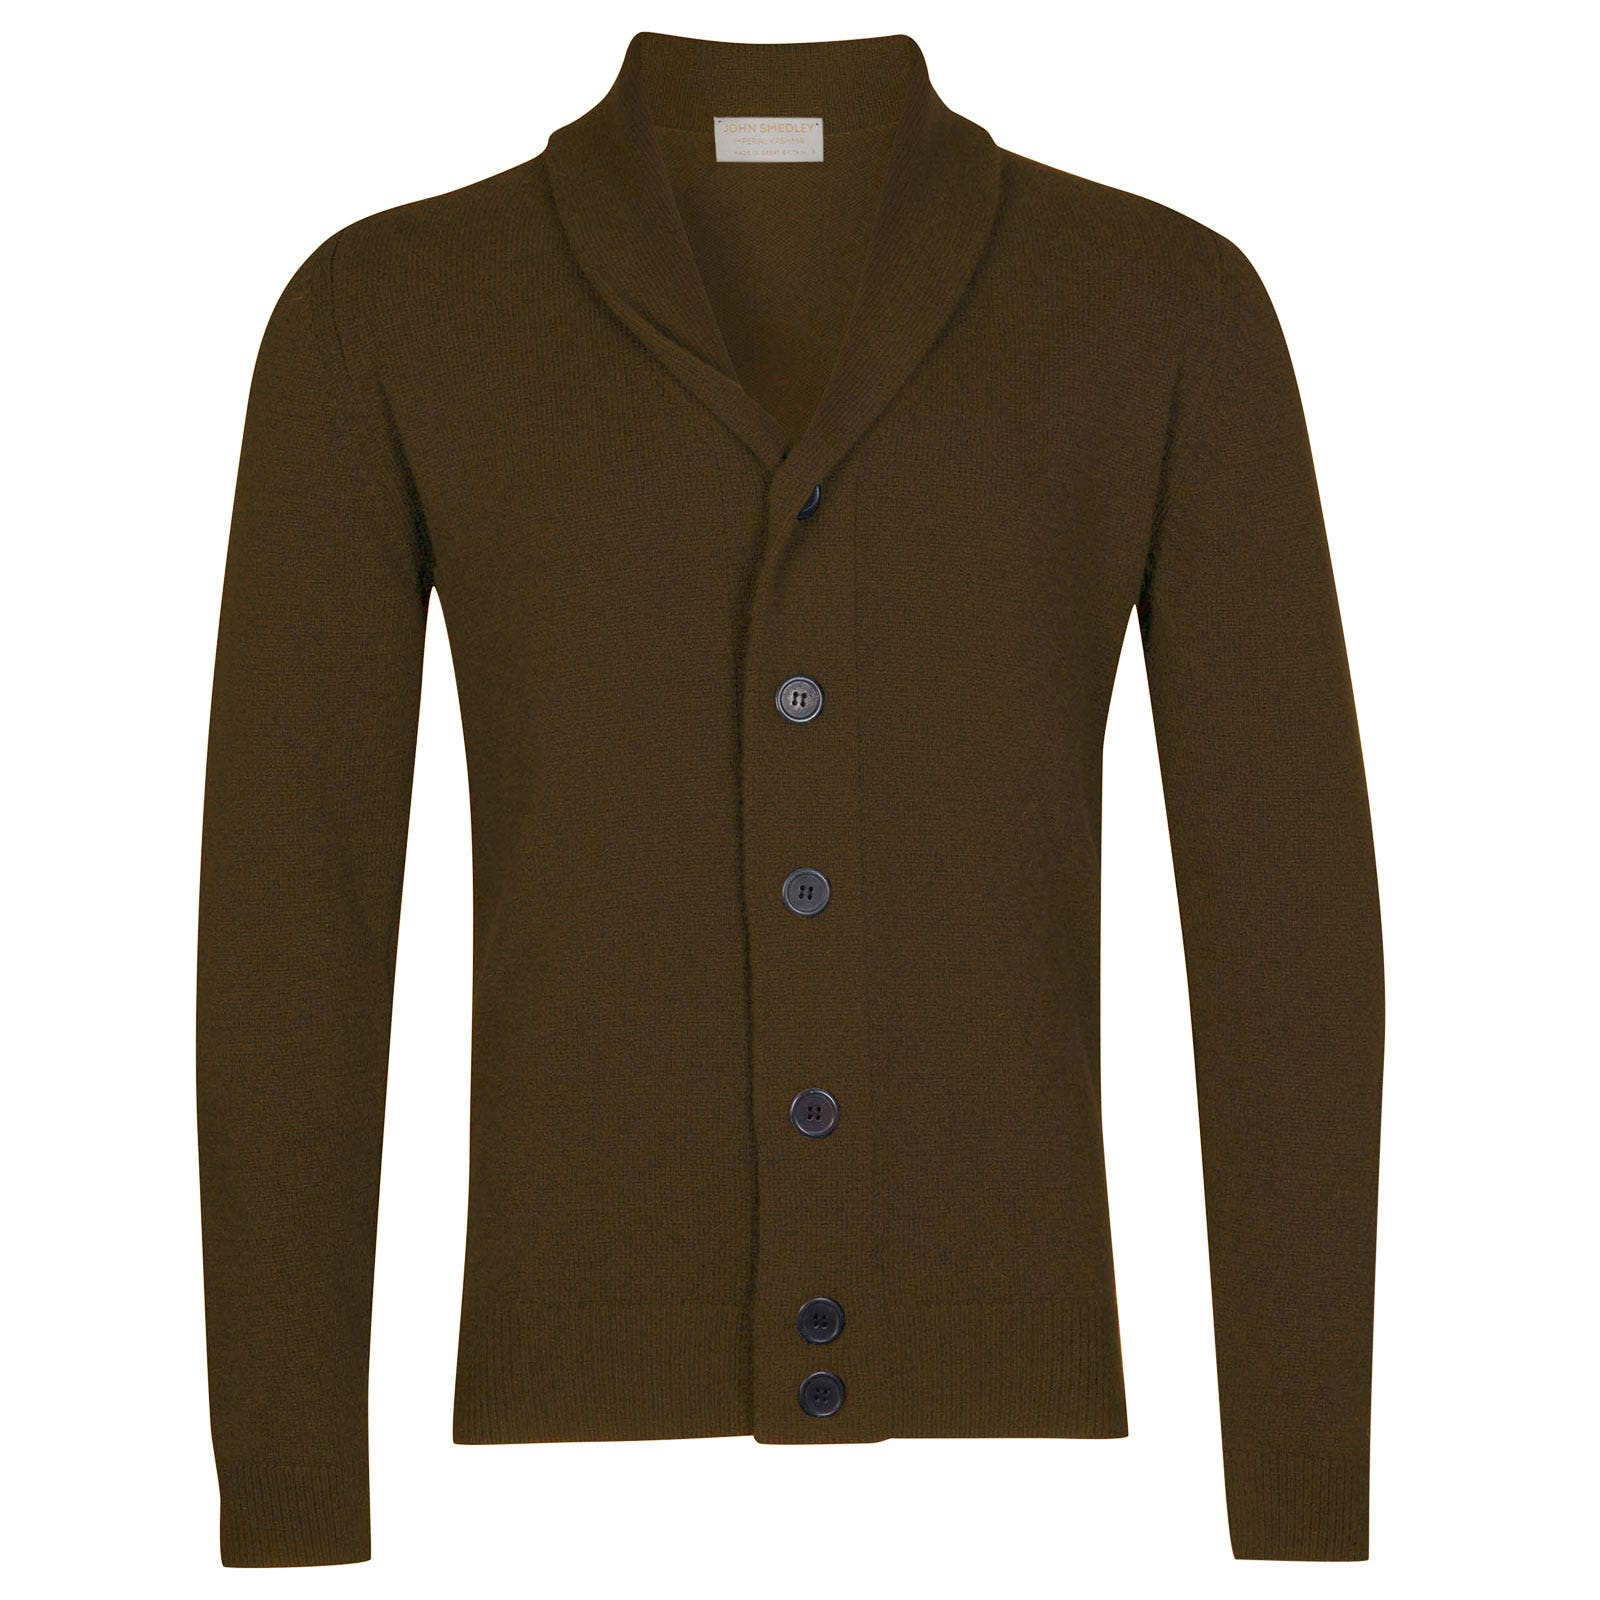 John Smedley patterson Wool and Cashmere Jacket in Kielder Green-L